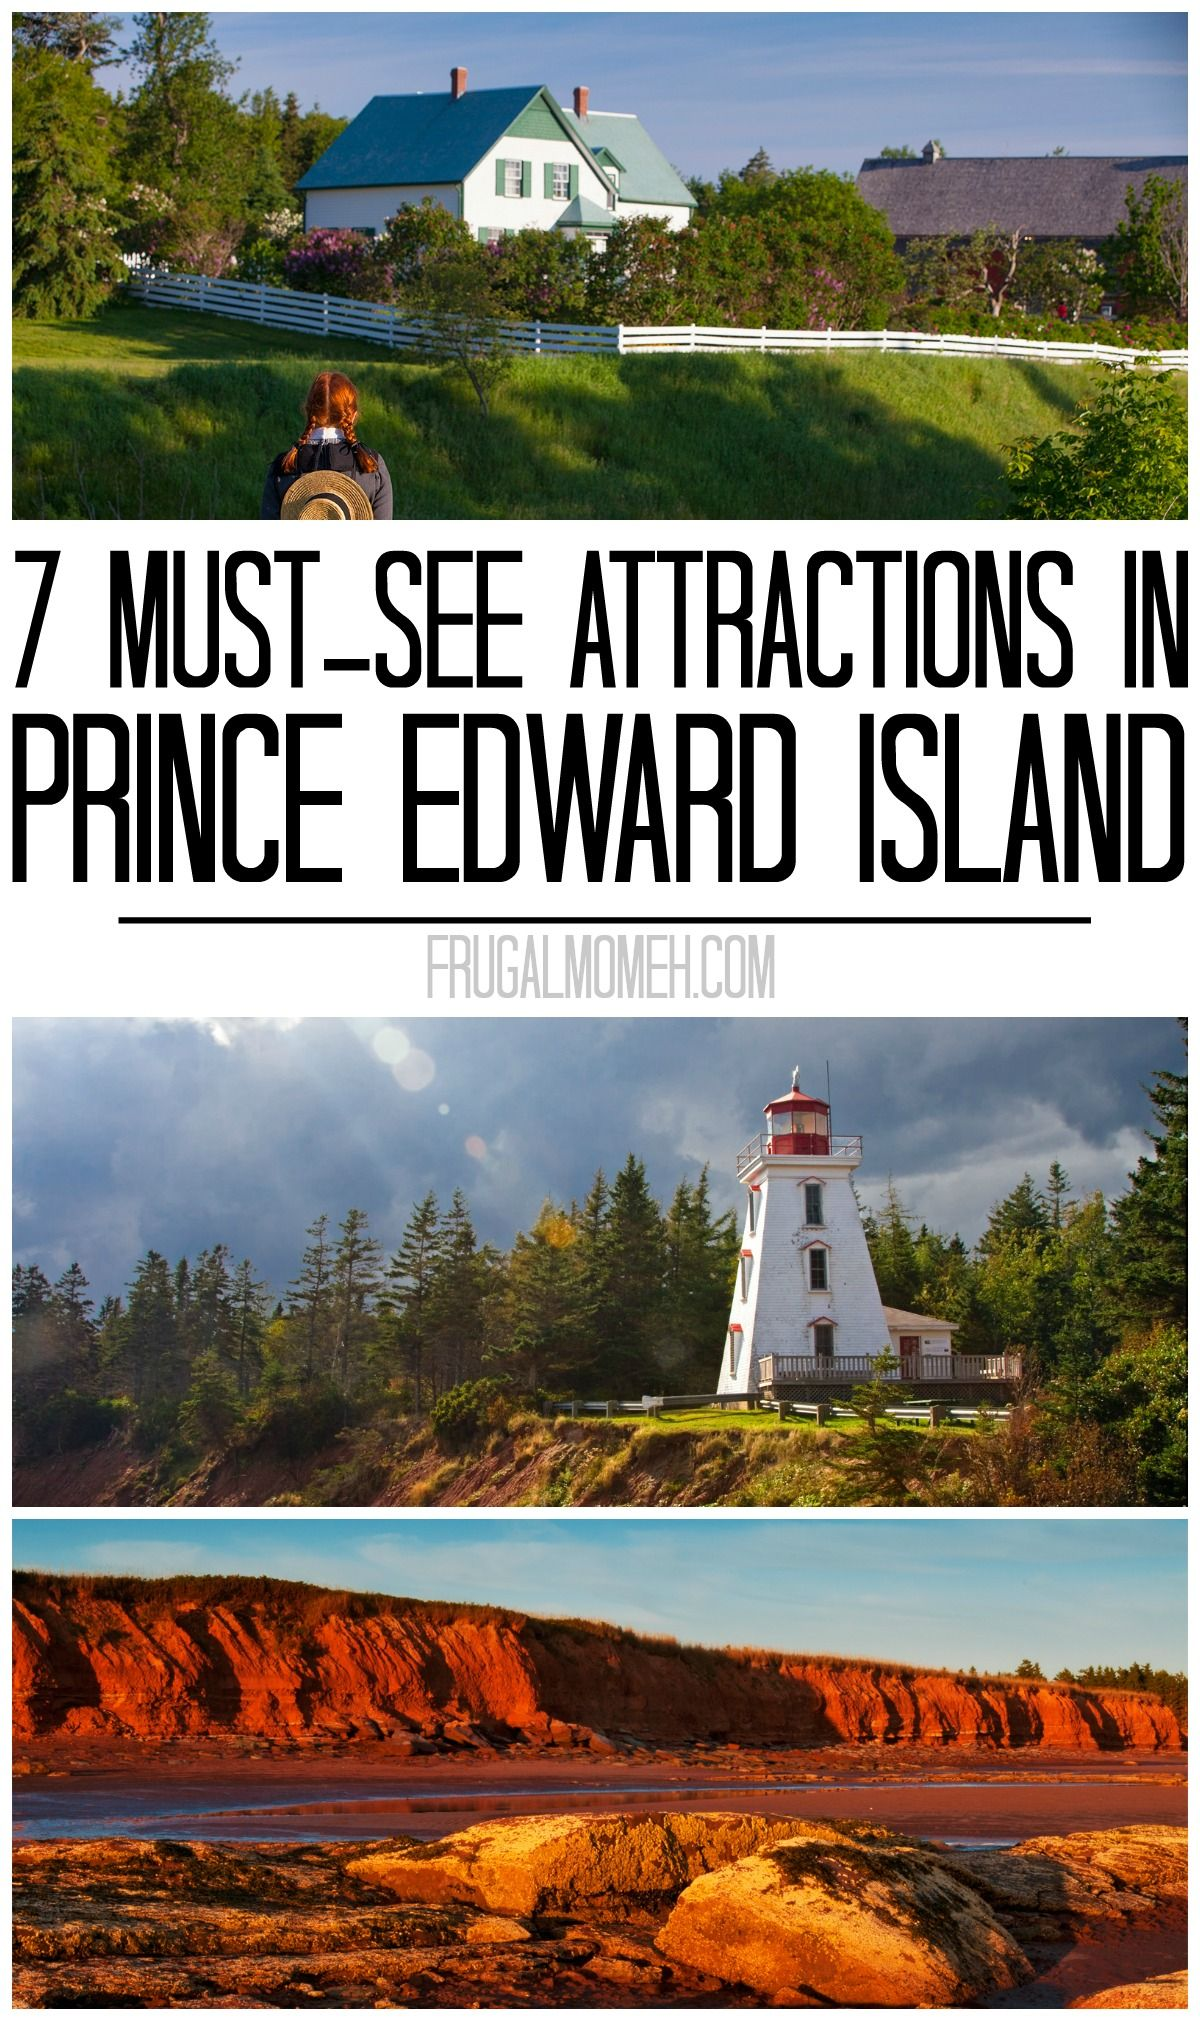 7 Must Have Kitchen Tools Every Home Needs: 7 Must-See Attractions In Prince Edward Island